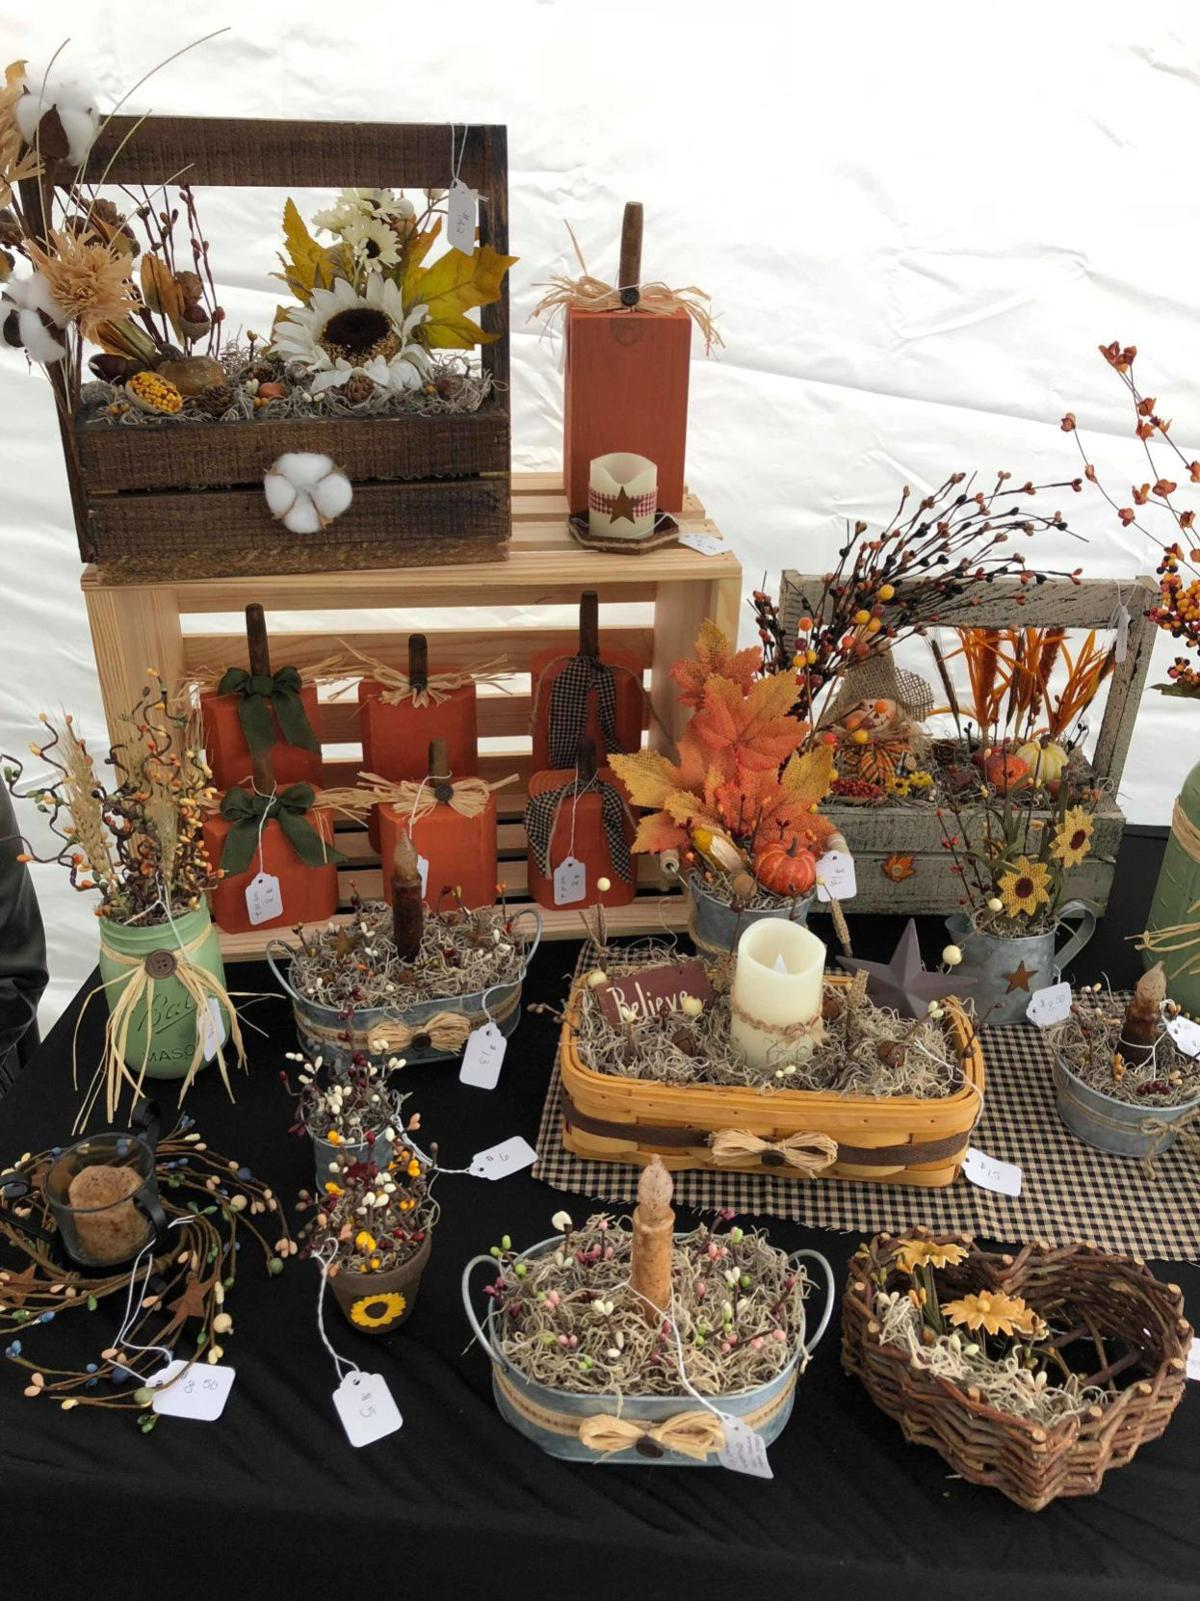 barb's crafts and more